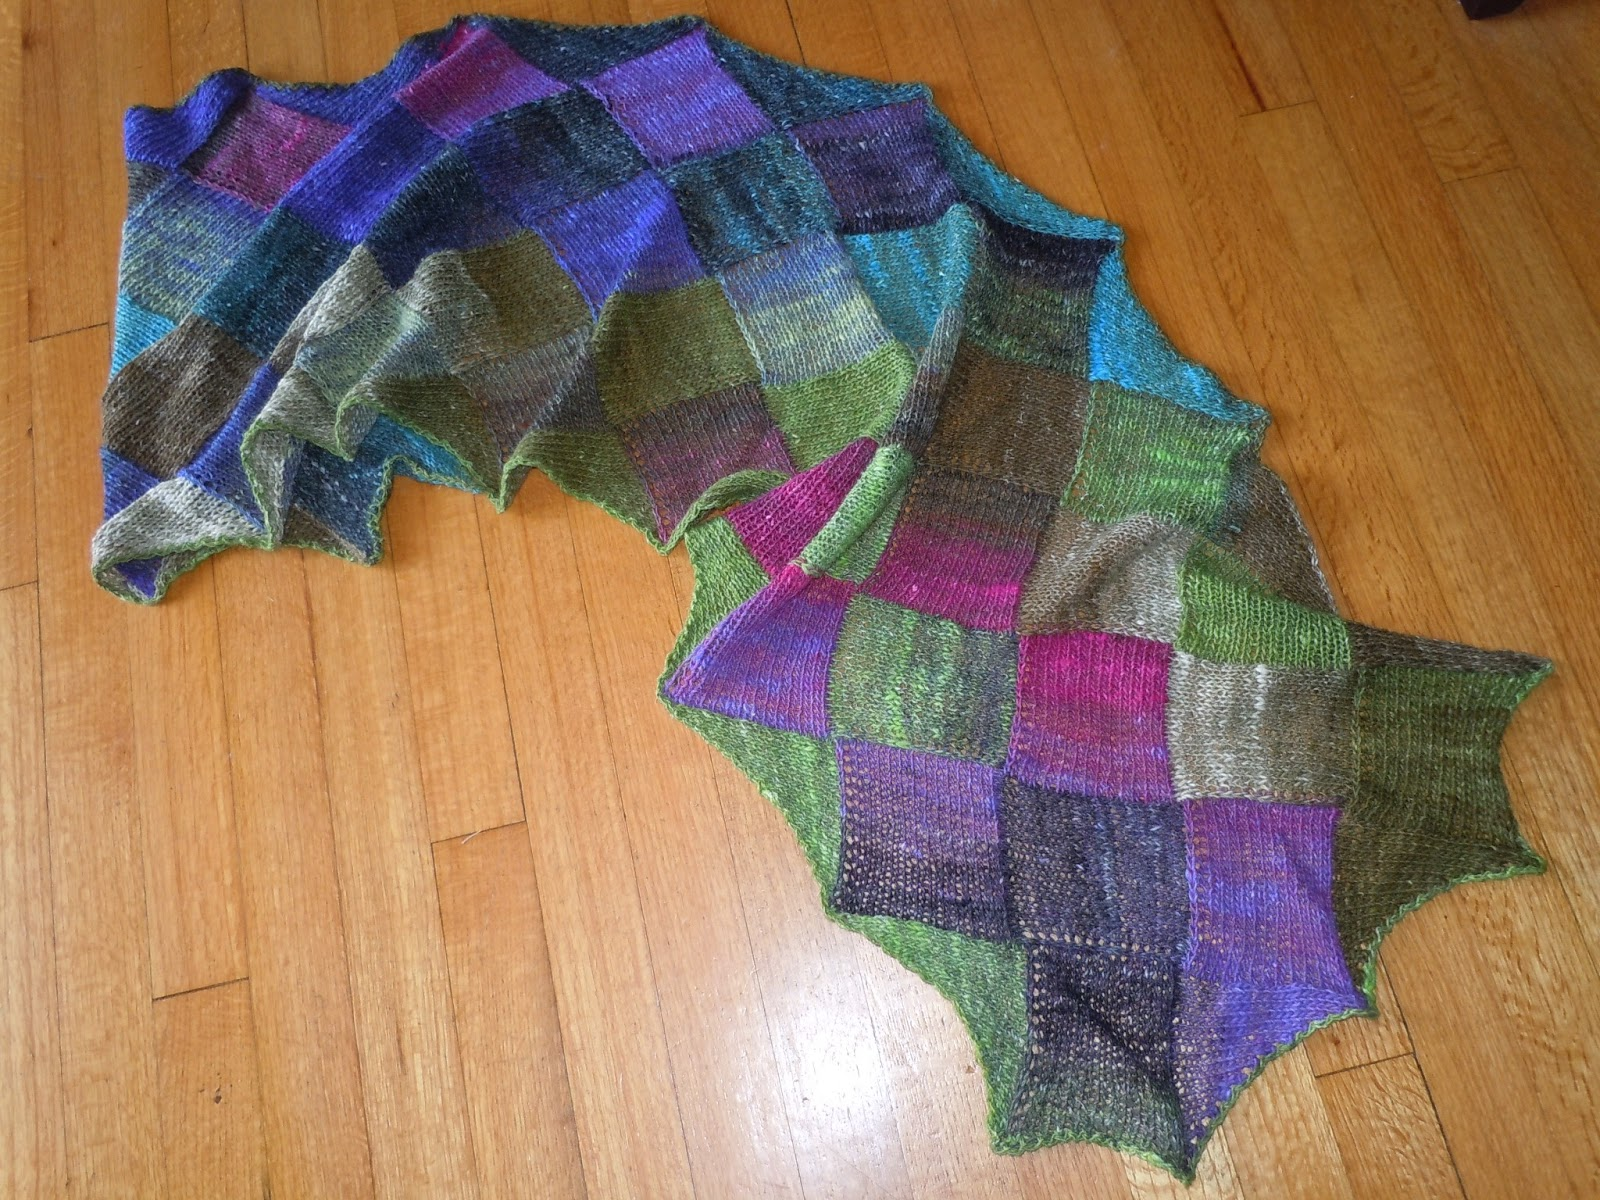 yarn art color garden : This Is The Plain Version Using Noro Silk Garden Sock Weight Yarn This Yarn Is A Slow Variegating Yarn And I Never Once Changed Colors